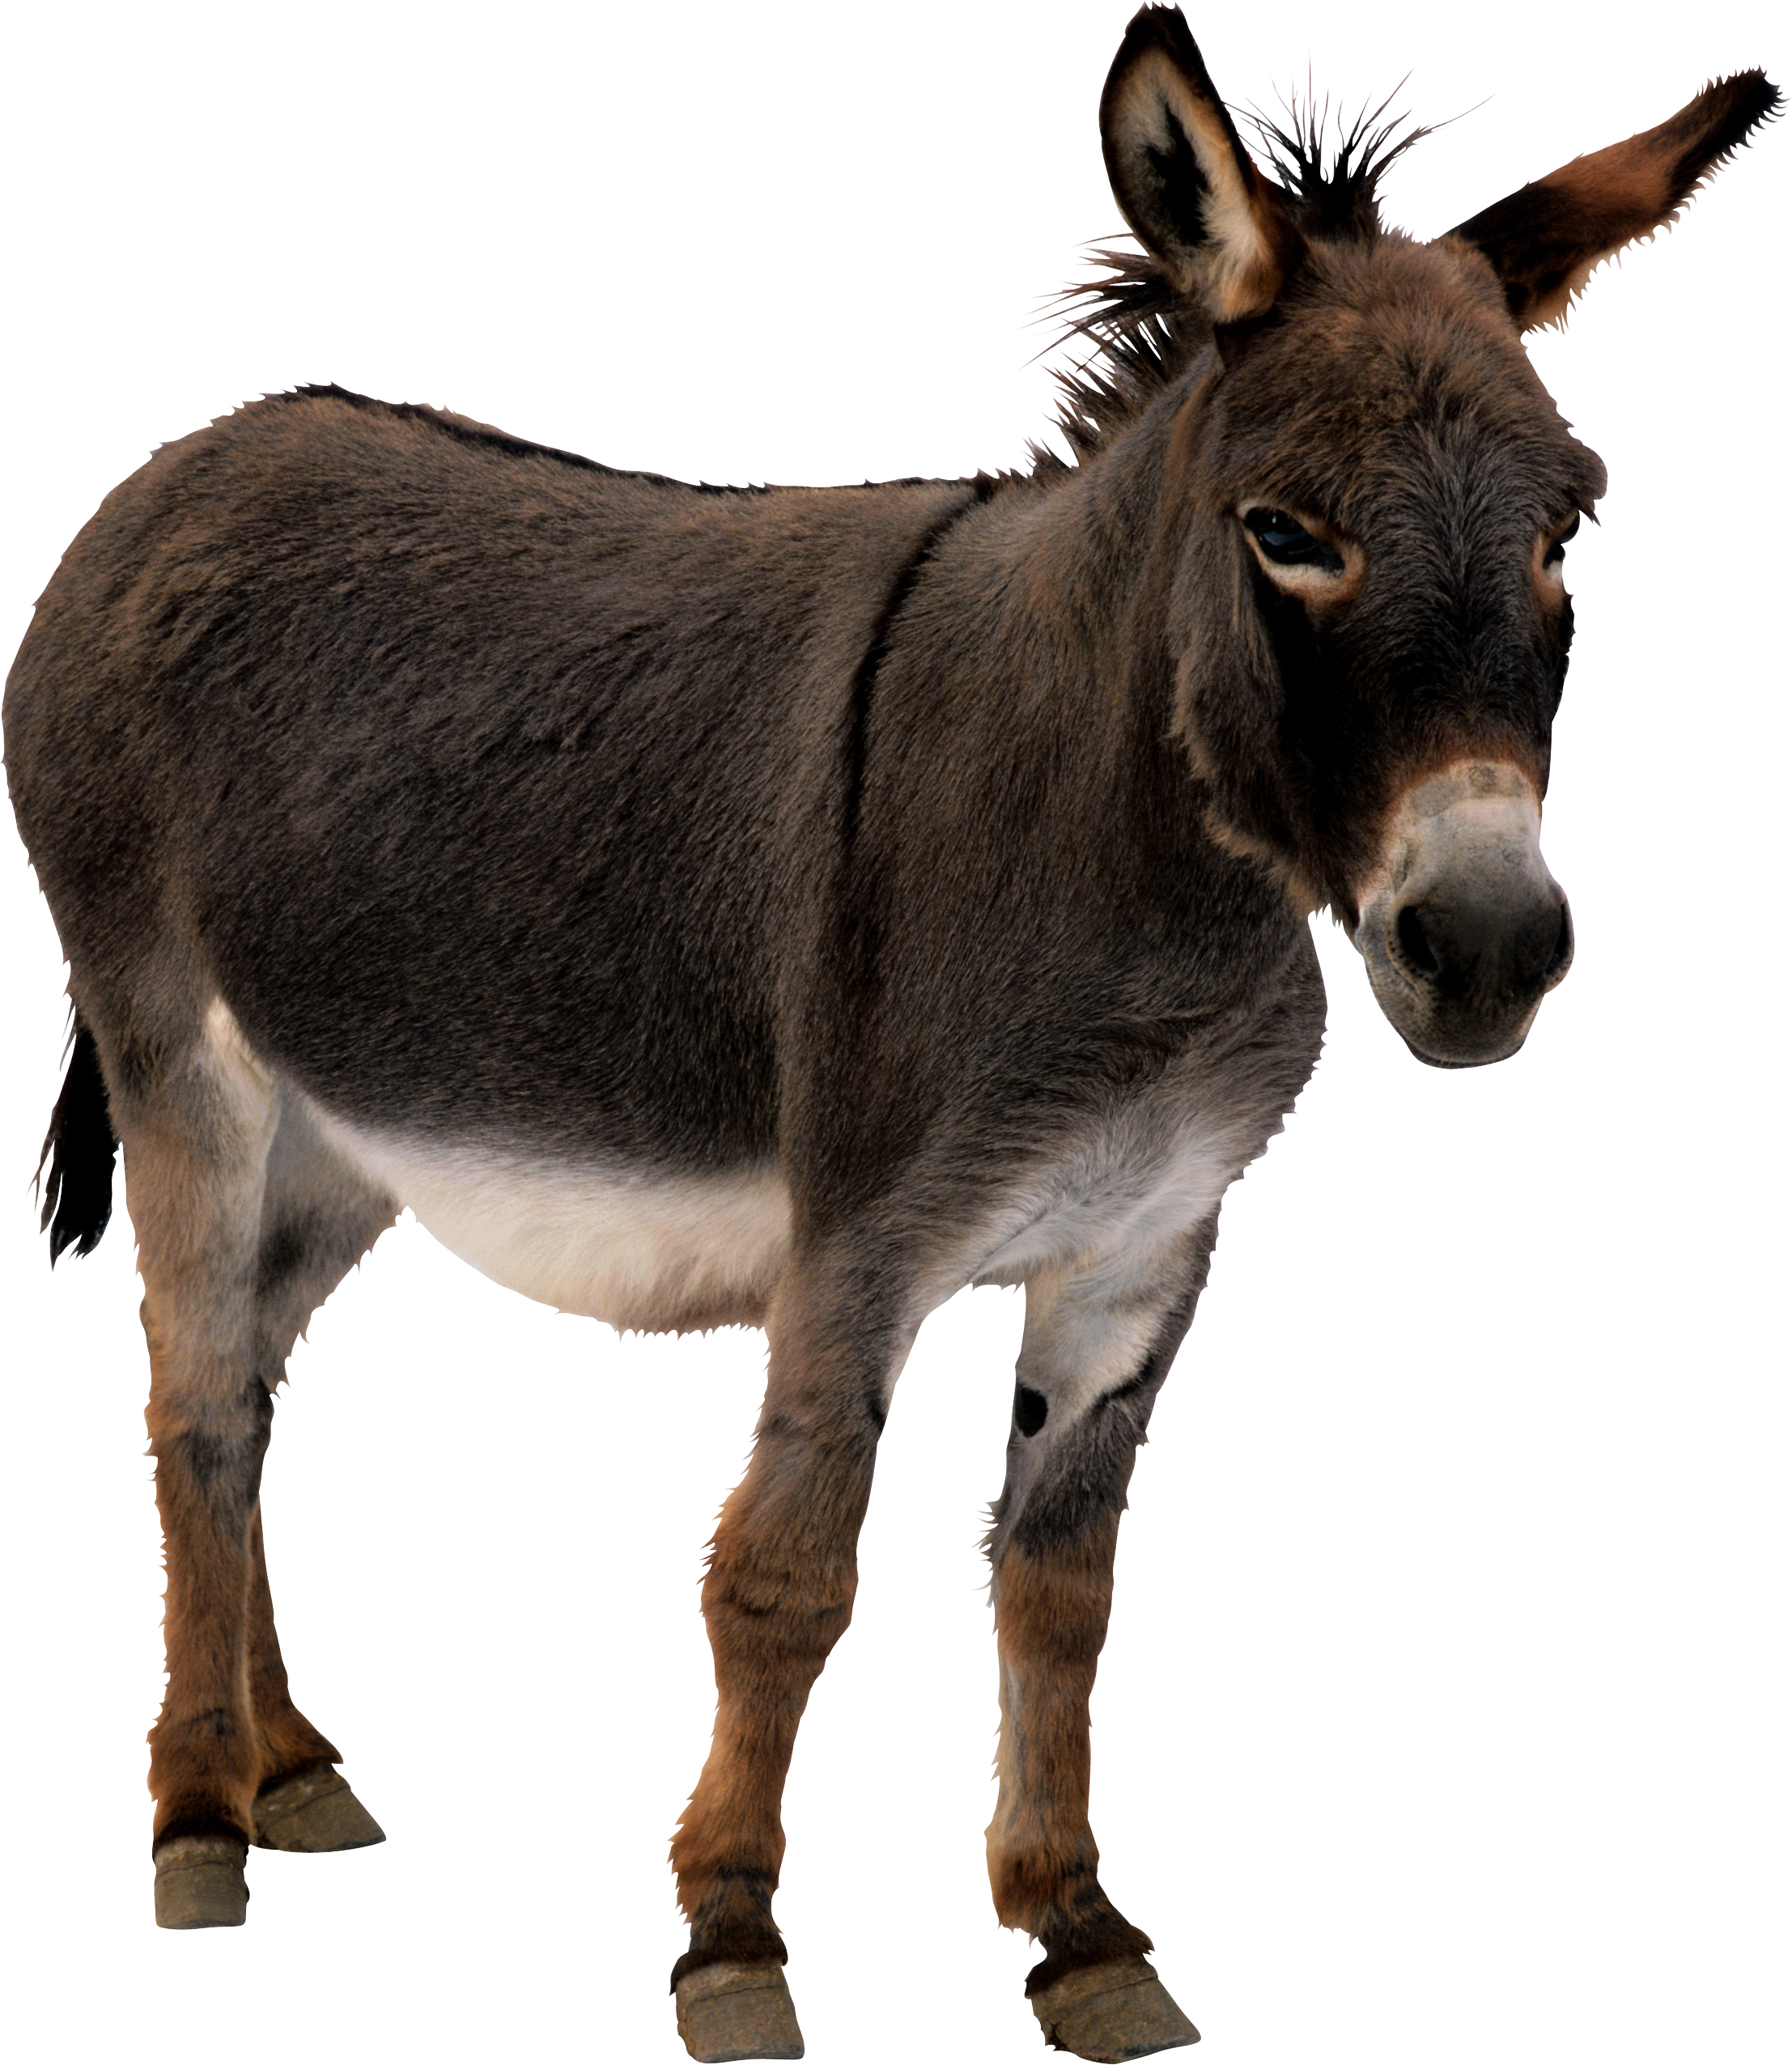 Donkey png images free. Mule clipart domesticated